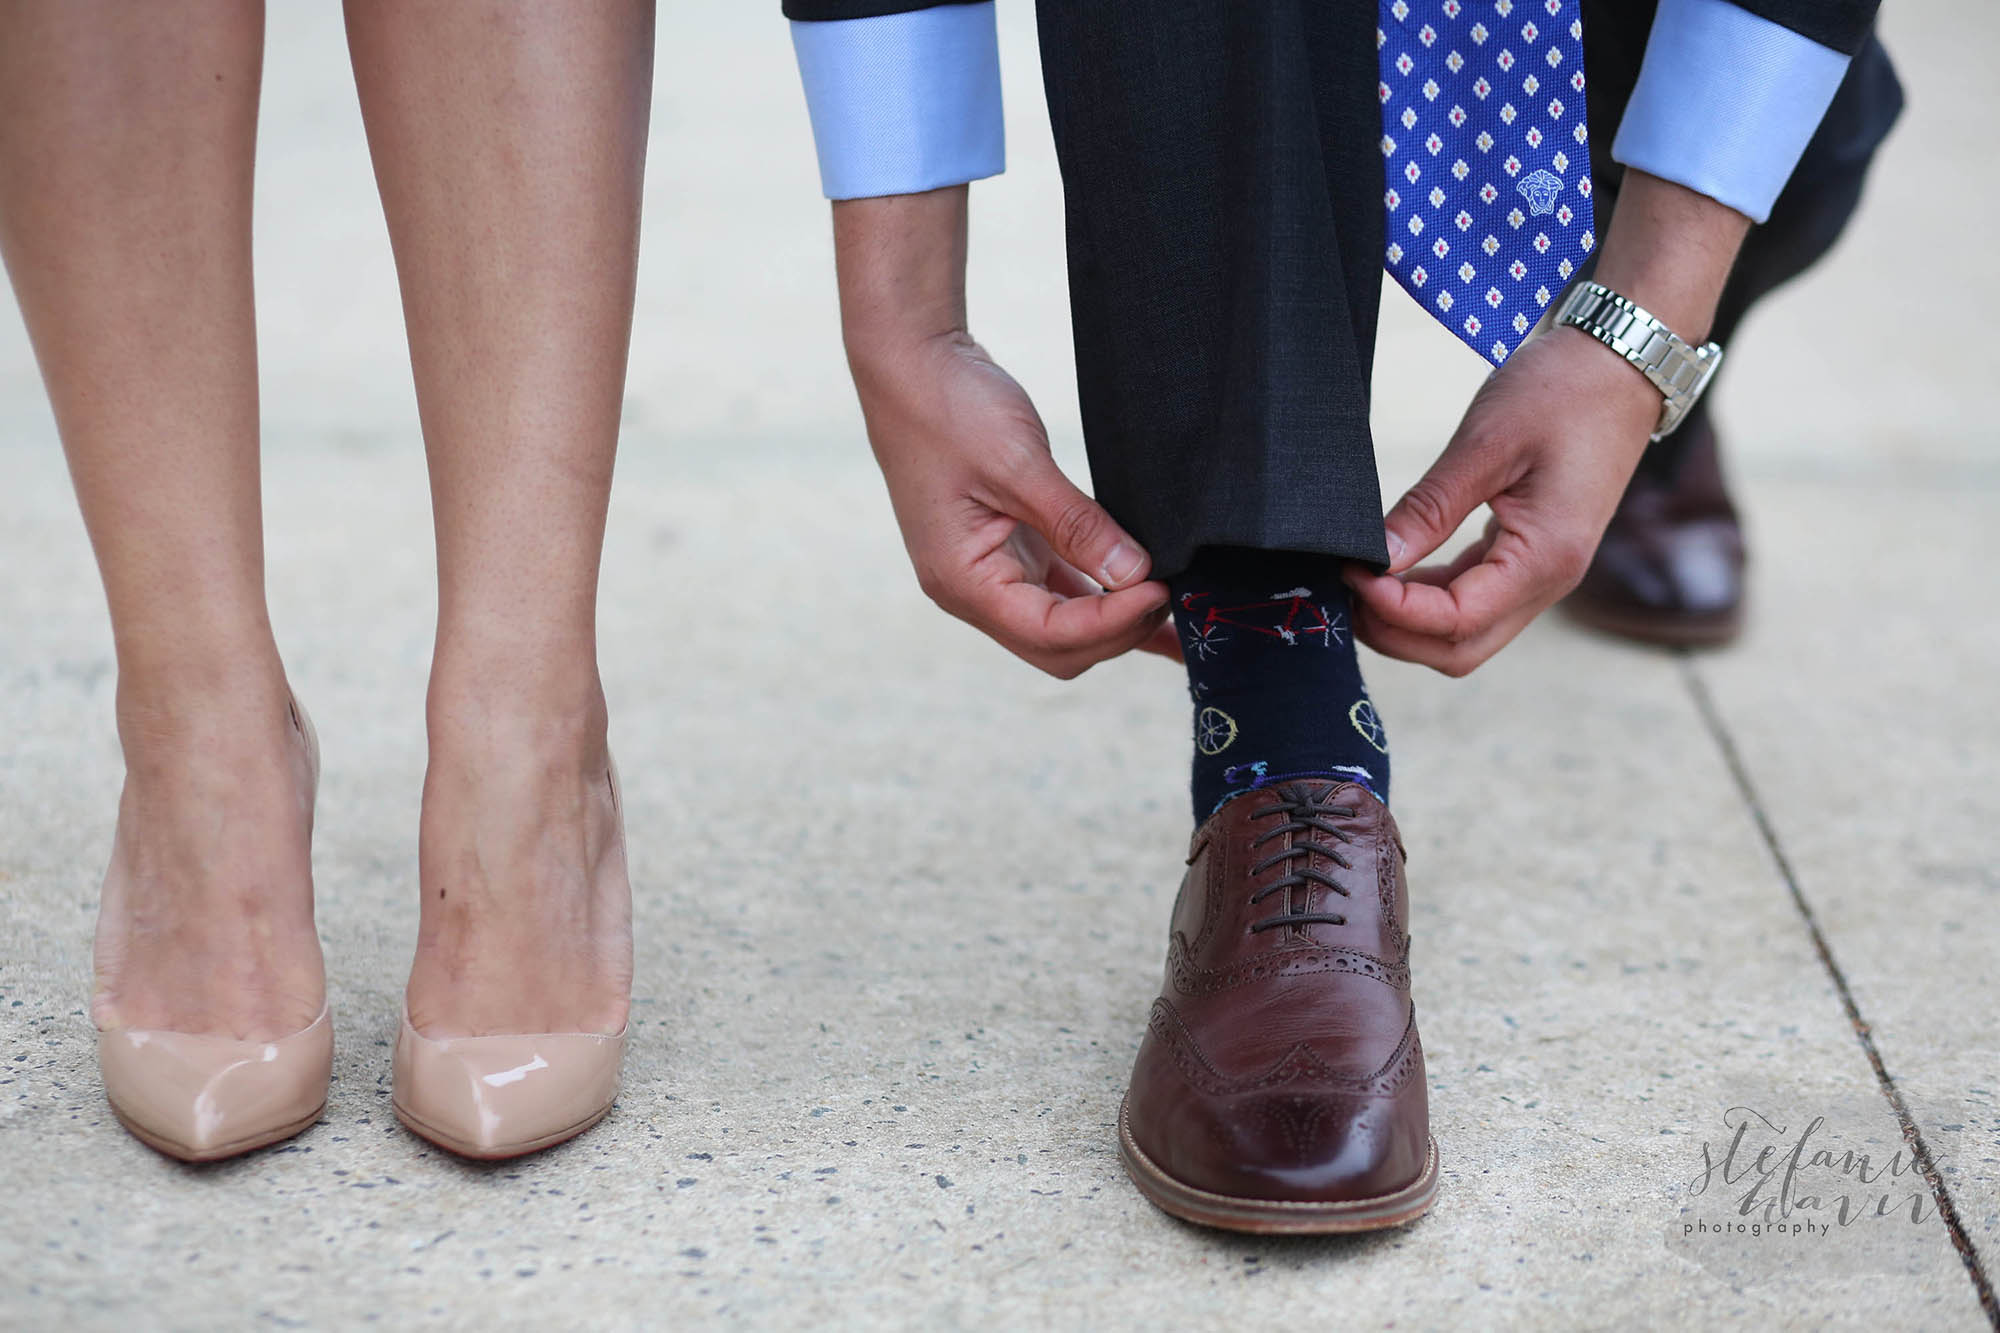 How to get the tie and the sock in the photo at the same time---score!